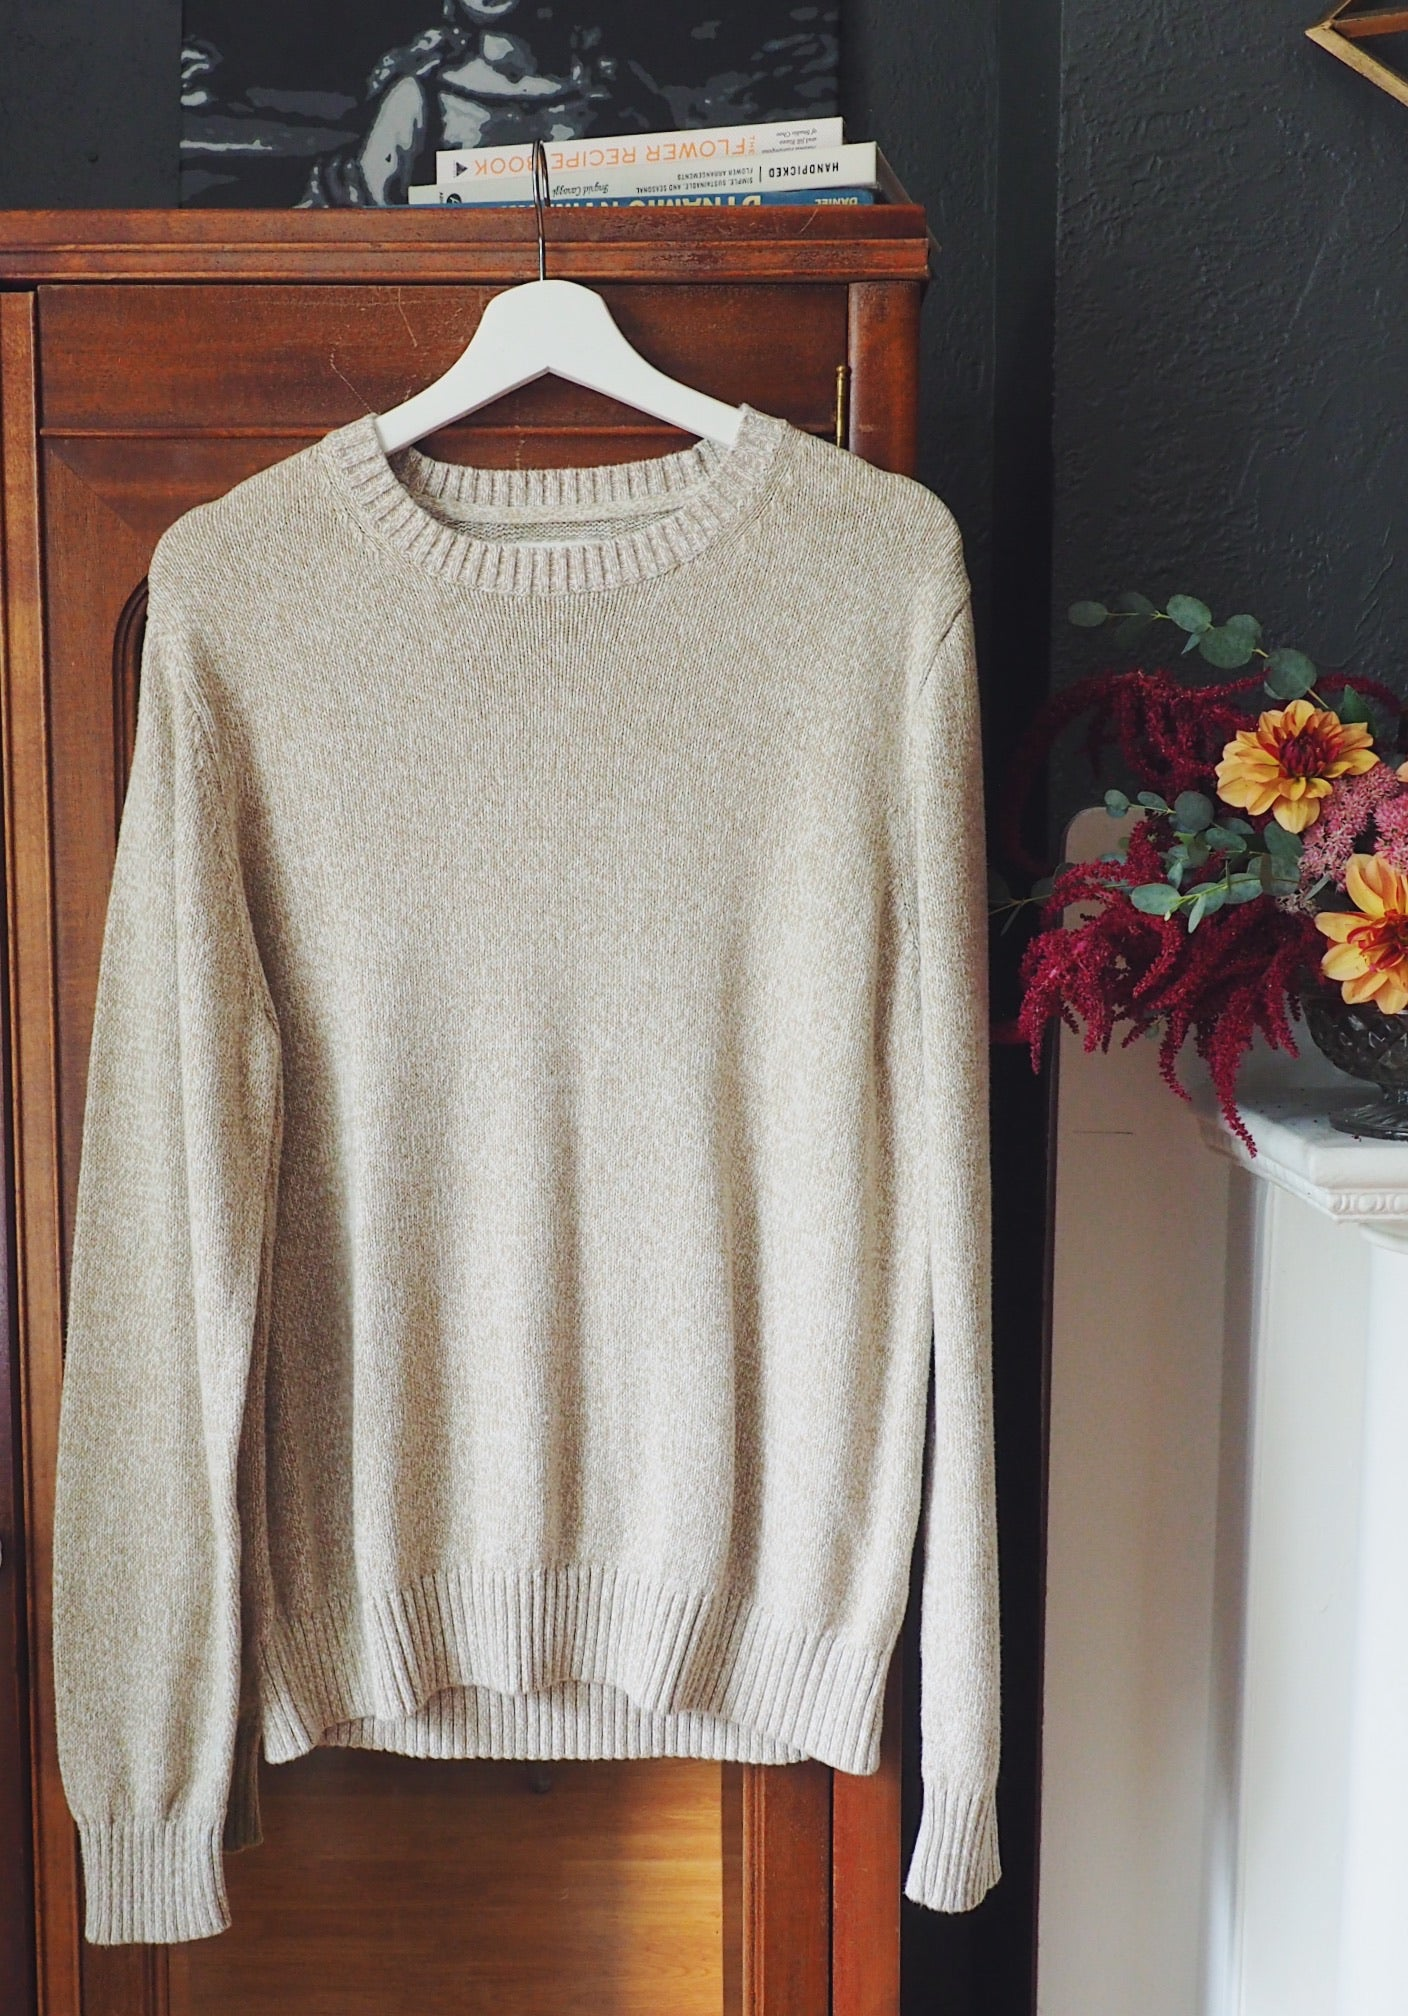 Vintage St. John's Bay Crewneck Sweater